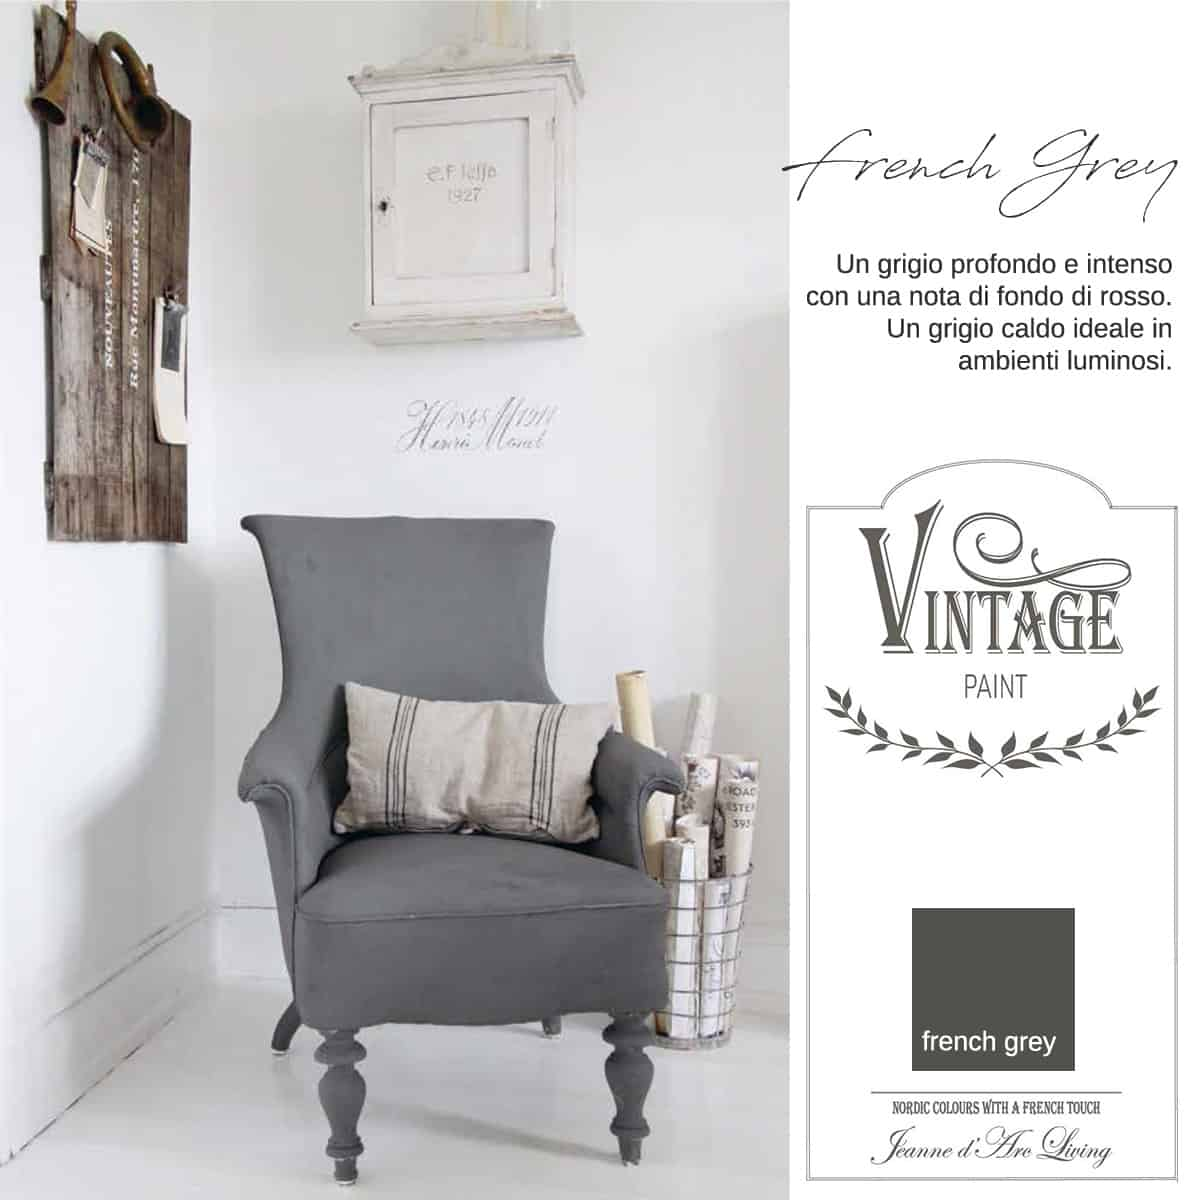 French Grey Vernice Vintage Chalk Paint Vintagepaint